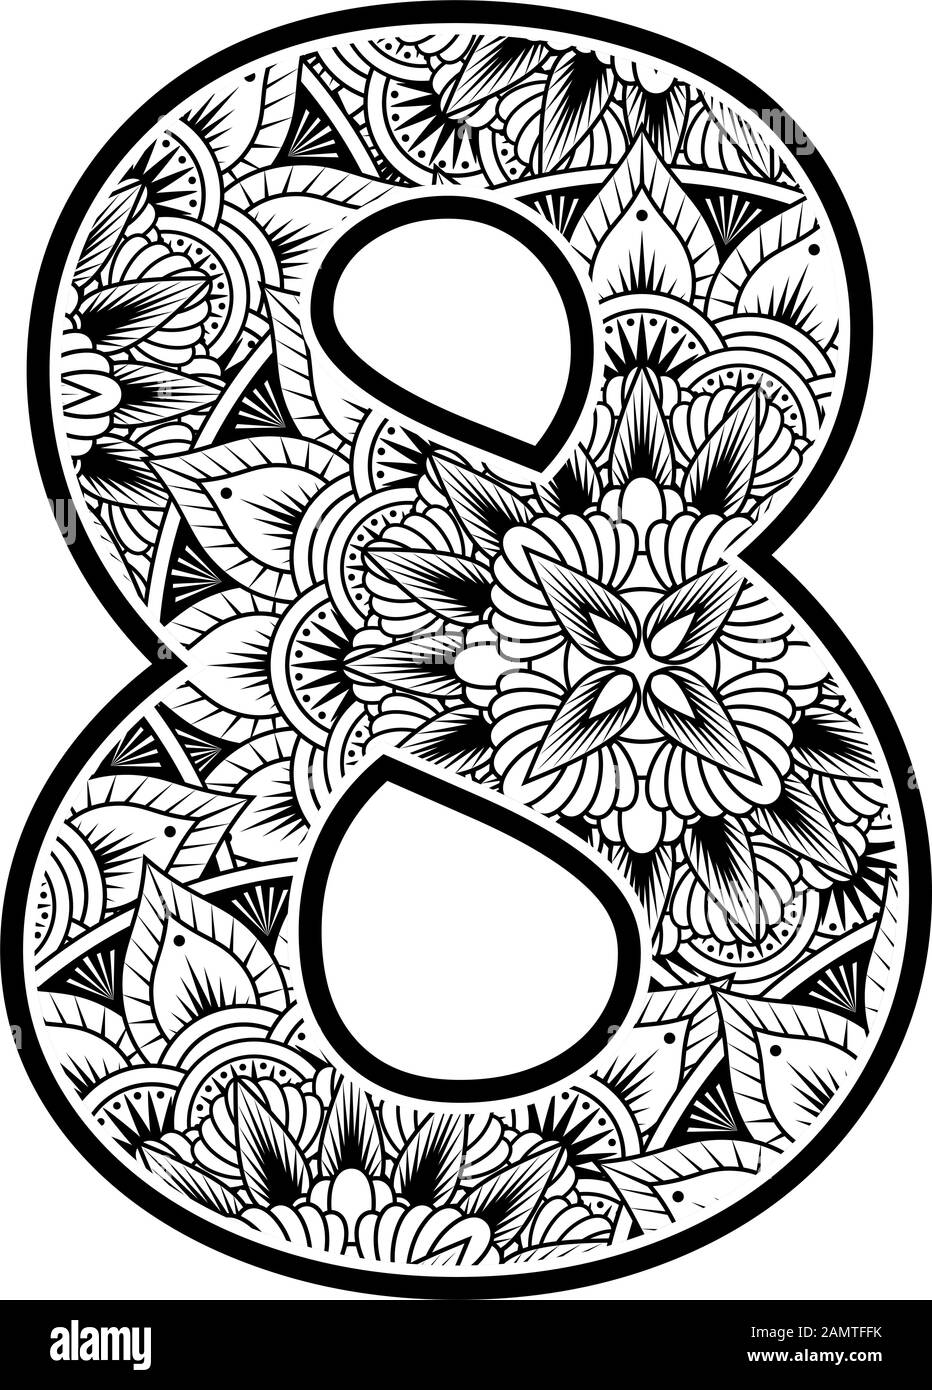 number 8 with abstract flowers ornaments in black and white. design inspired from mandala art style for coloring. Isolated on white background Stock Vector